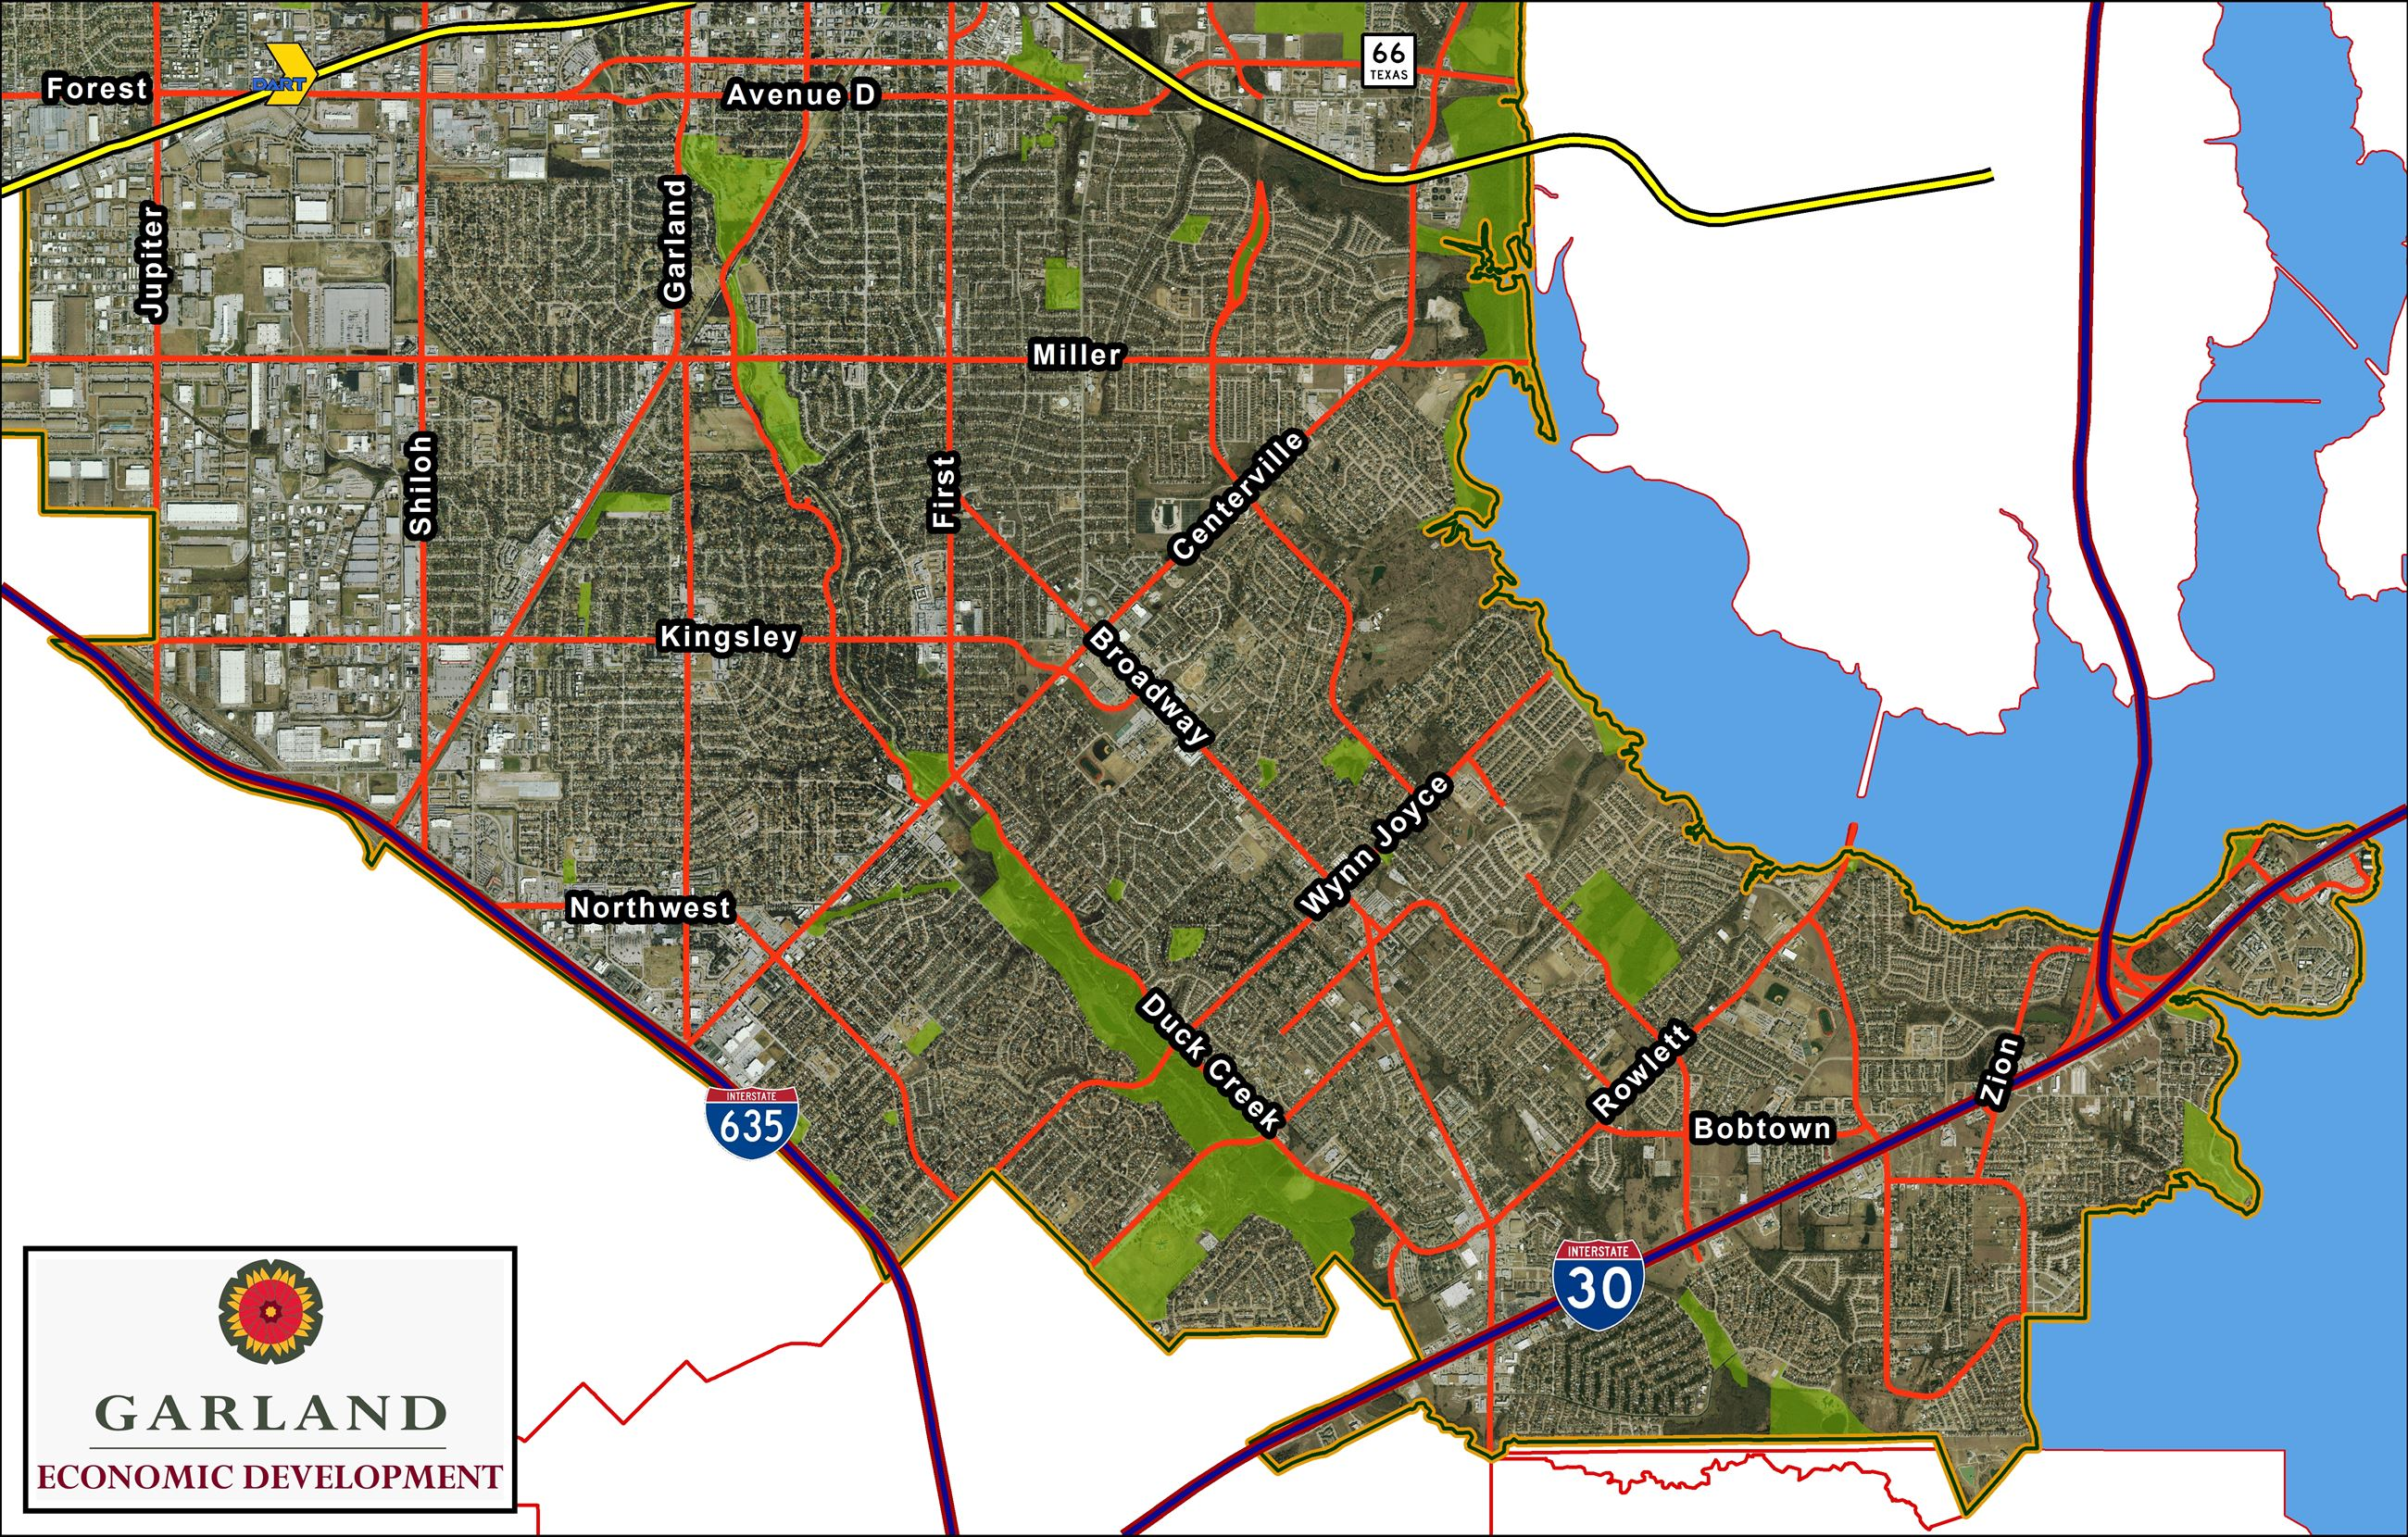 Map of South Garland